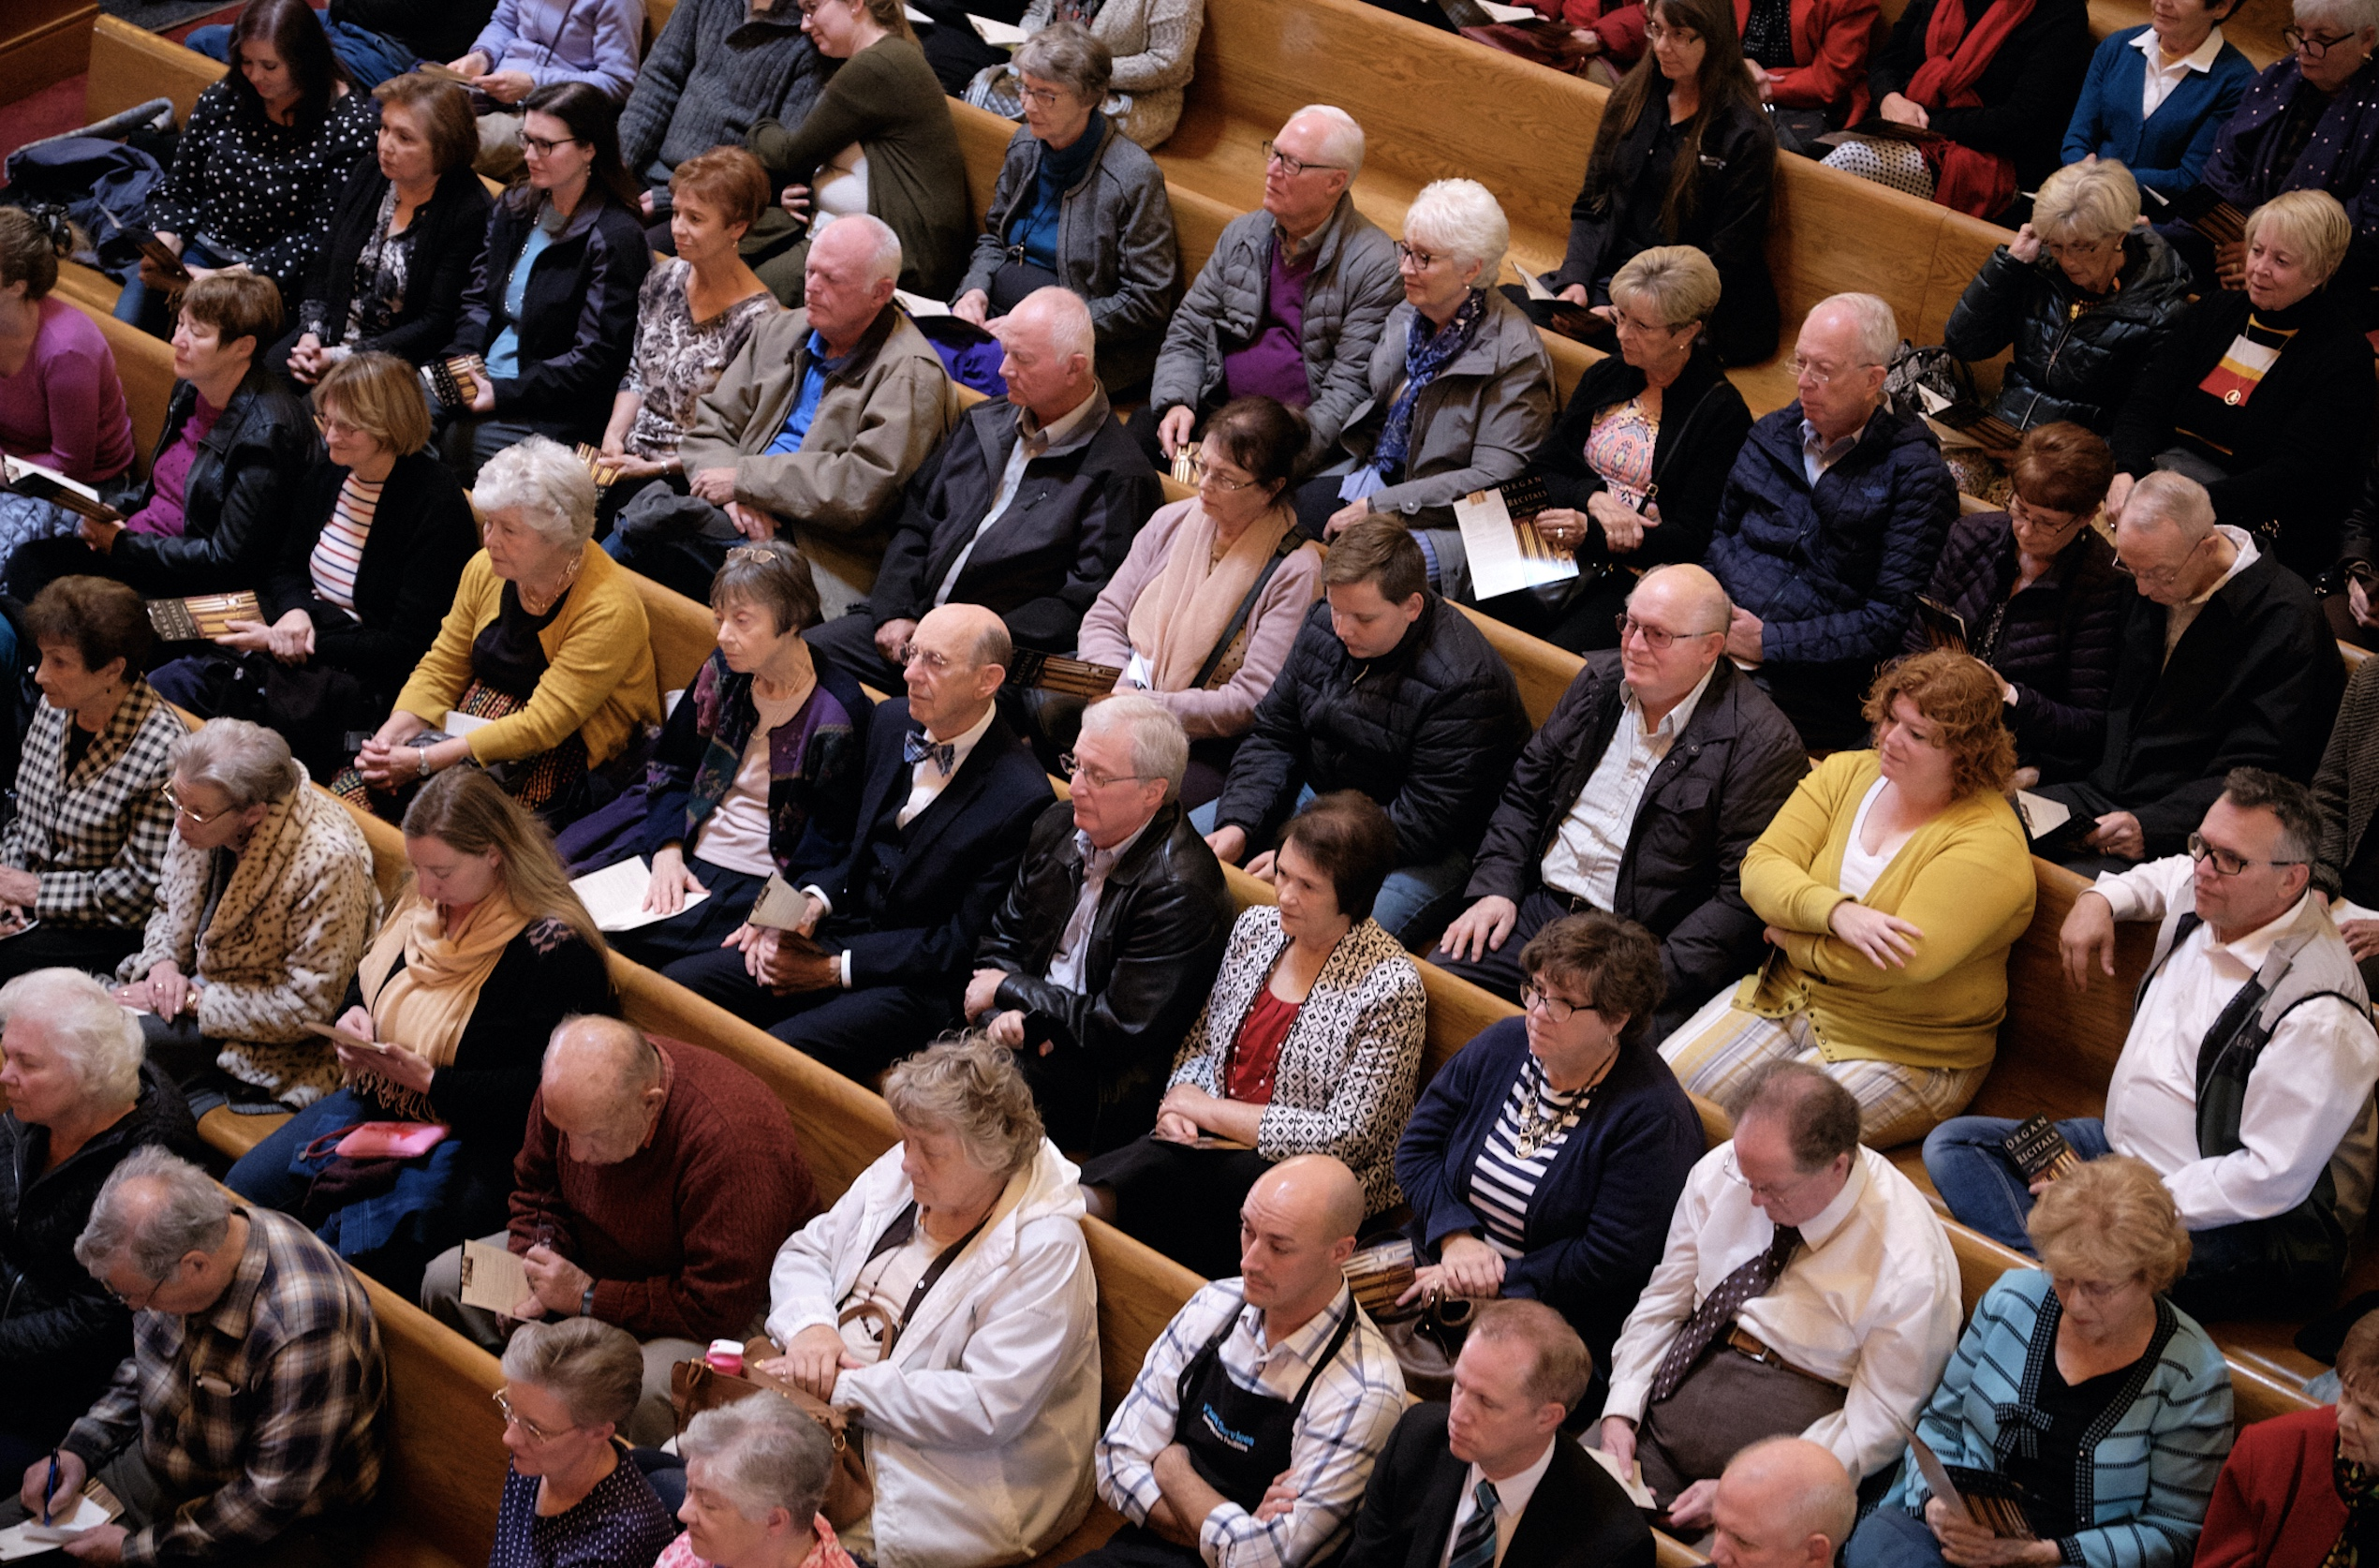 Family and friends listen during a recital performed by retiring Temple Square organist Bonnie Goodliffe at the Salt Lake Tabernacle on Monday, Oct. 21, 2019.